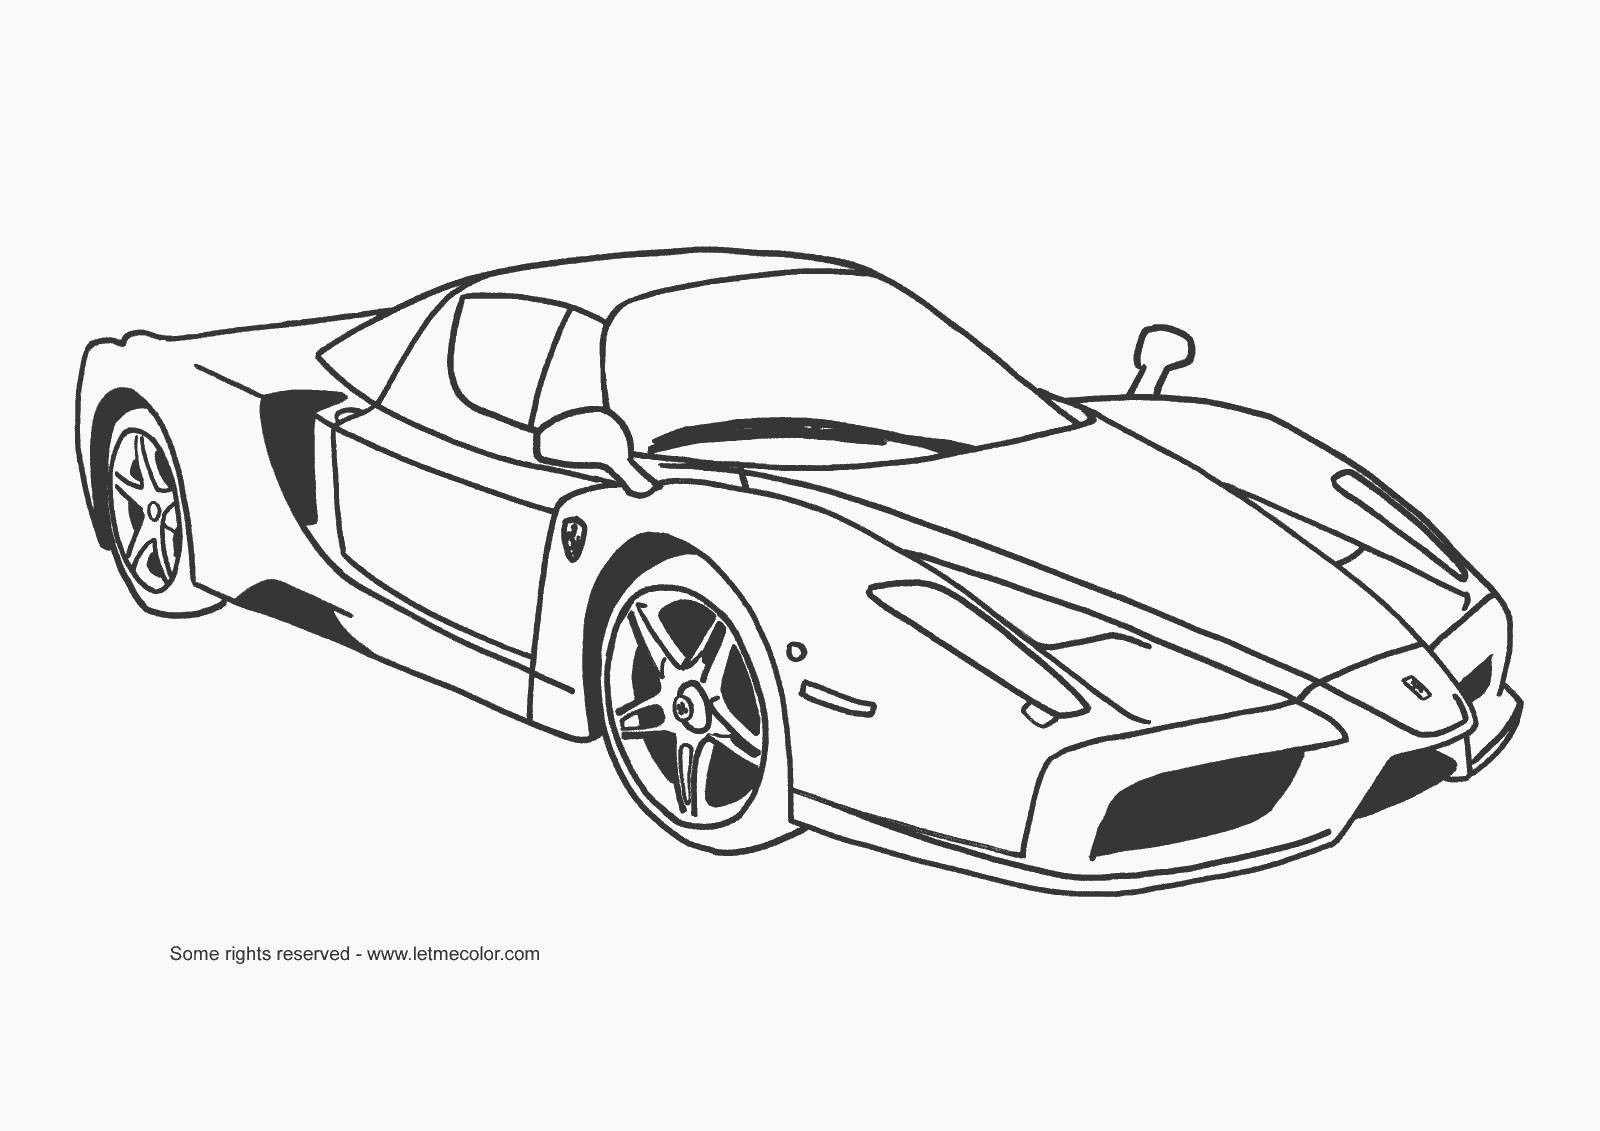 Free Coloring Pages Sports Cars. Explore Ferrari Car  Cool Cars and more Free Coloring Hot Wheels Pages Pinterest